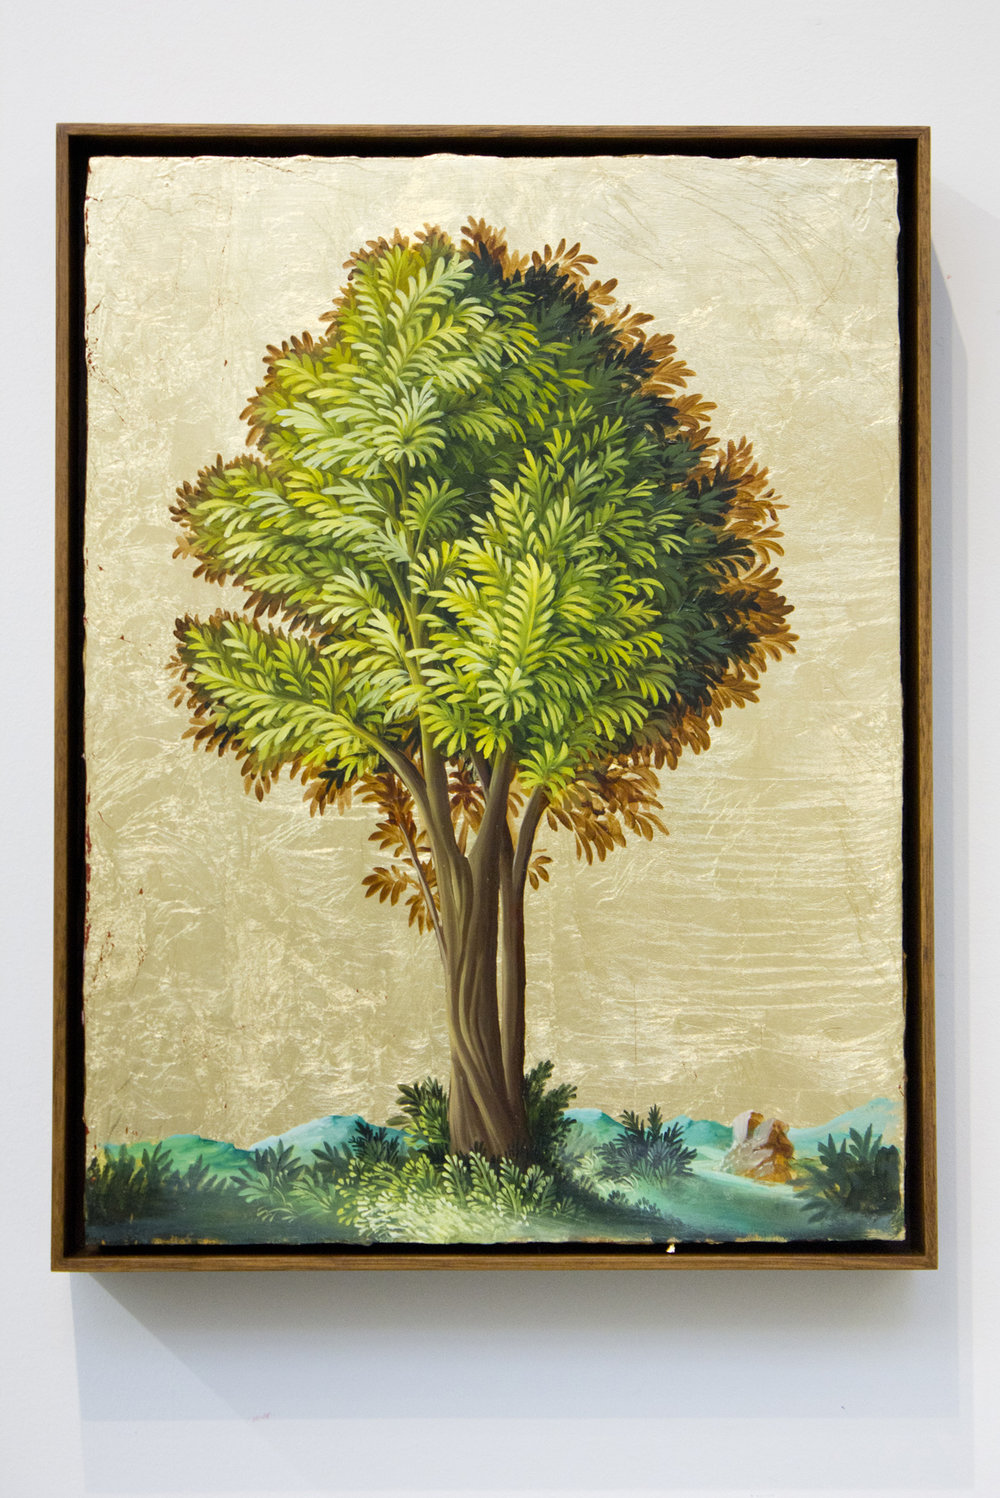 PETER DAVERINGTON   Portrait of a Tree #2  2017 Oil and gold leaf on panel 41 x 31 cm Frame: 43 x 33 cm